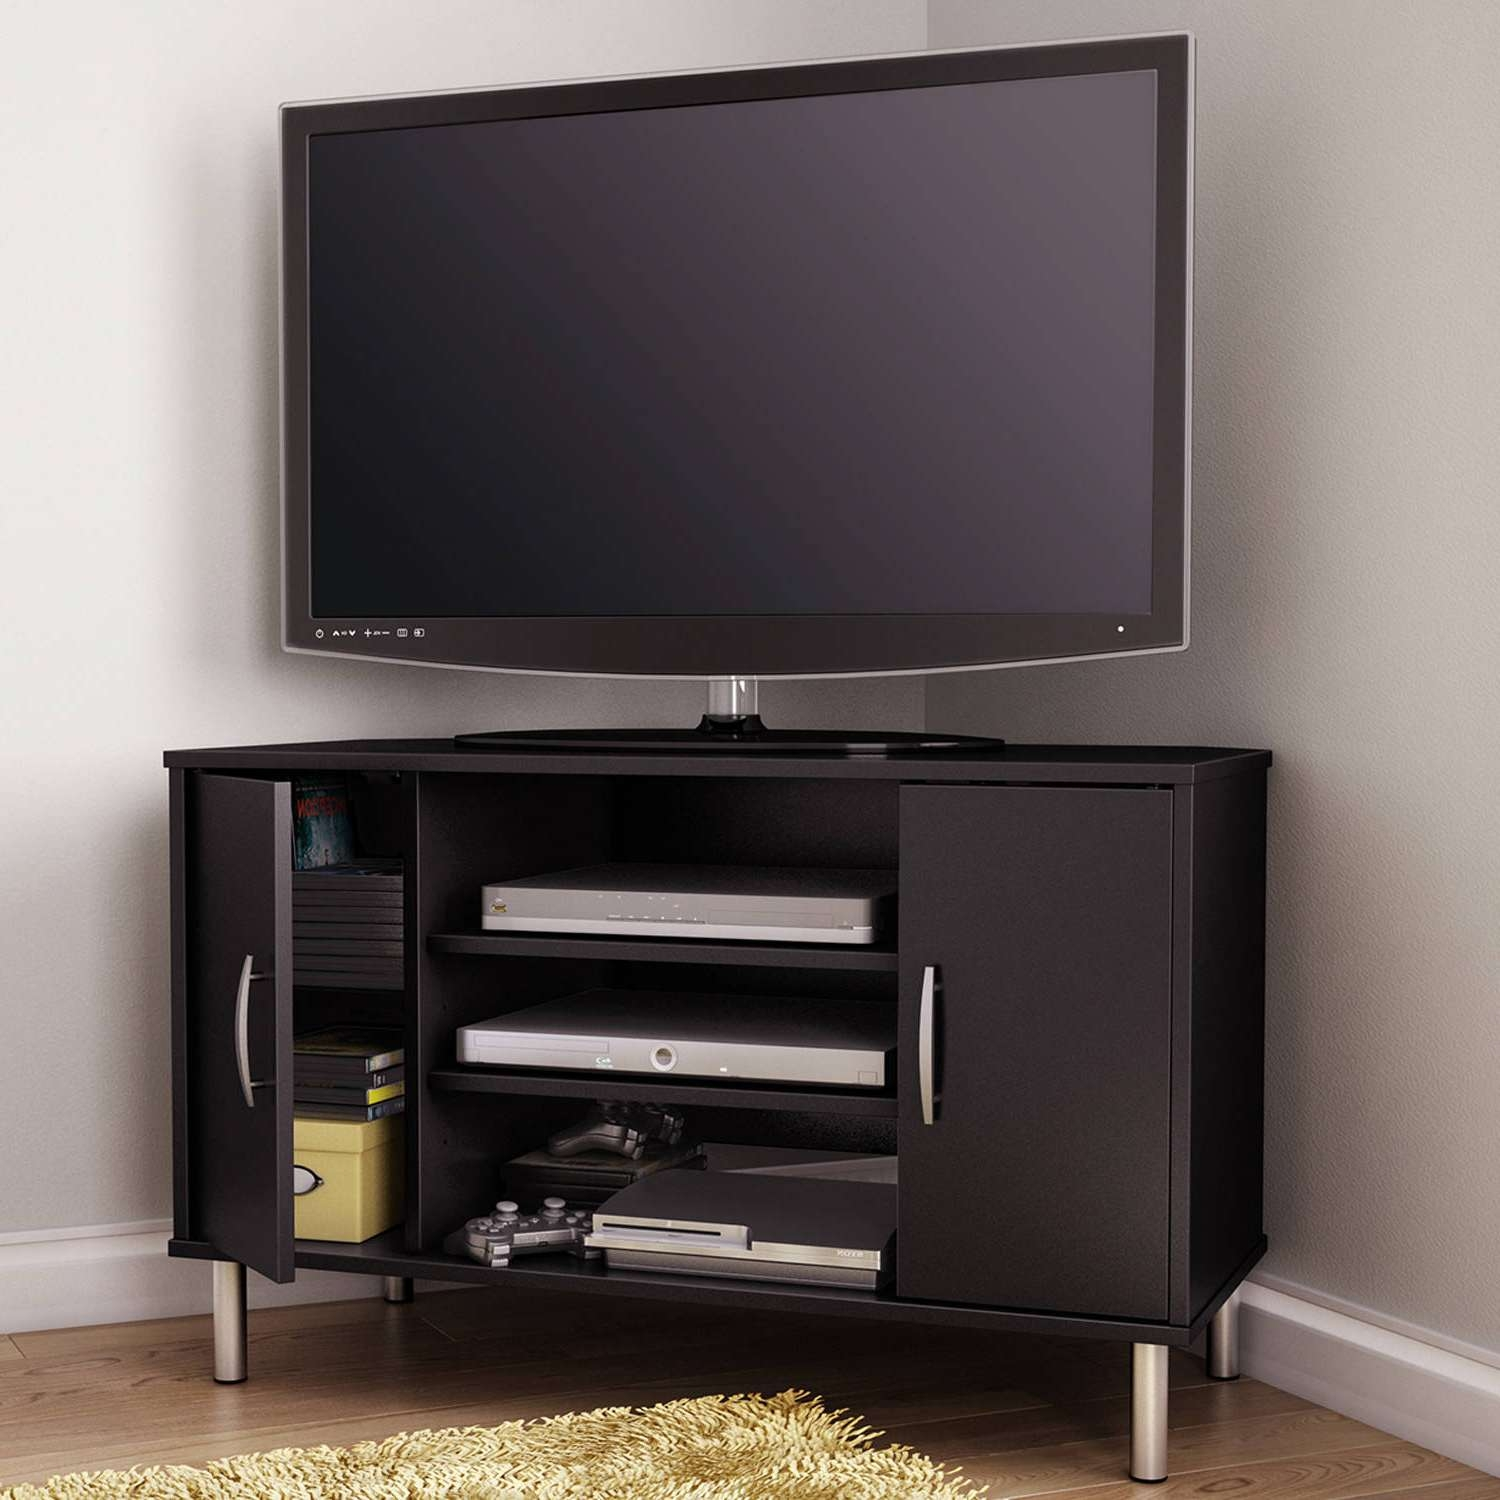 Tv Stand : 43 Literarywondrous Corner Tv Stand For 50 Inch Flat For Corner Tv Stands For 50 Inch Tv (View 16 of 20)